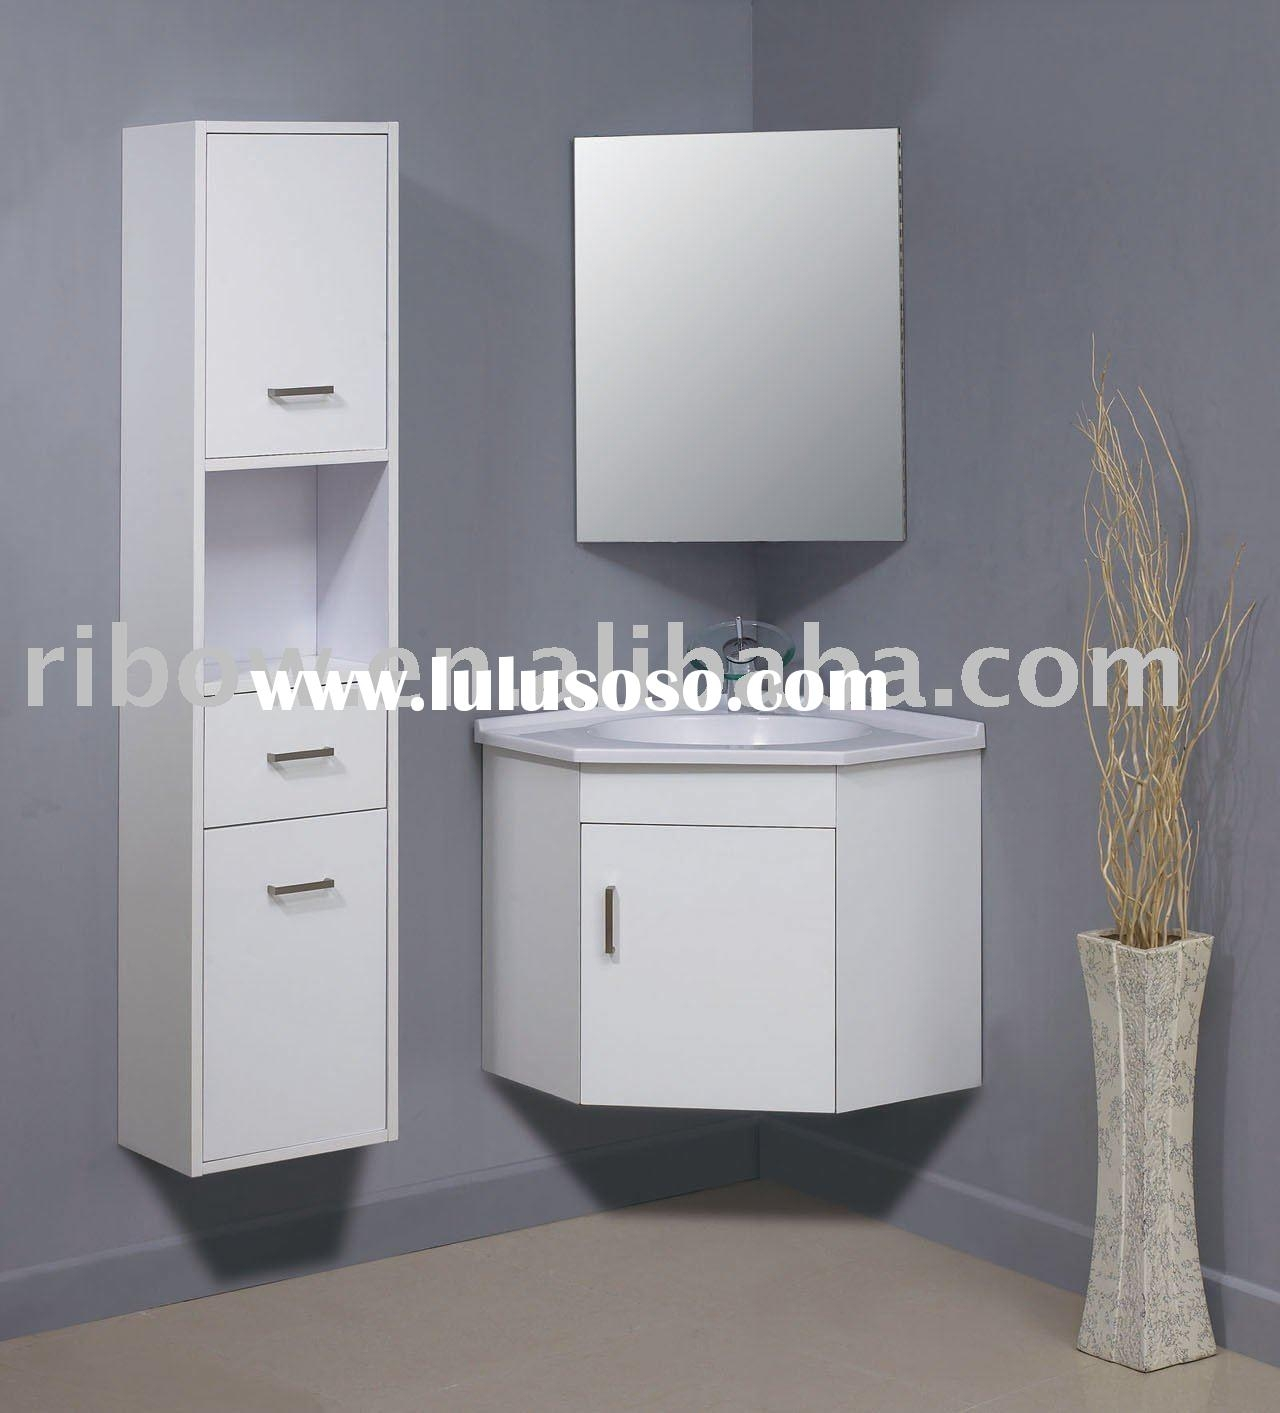 Corner Bathroom Wall Cabinet With Mirror